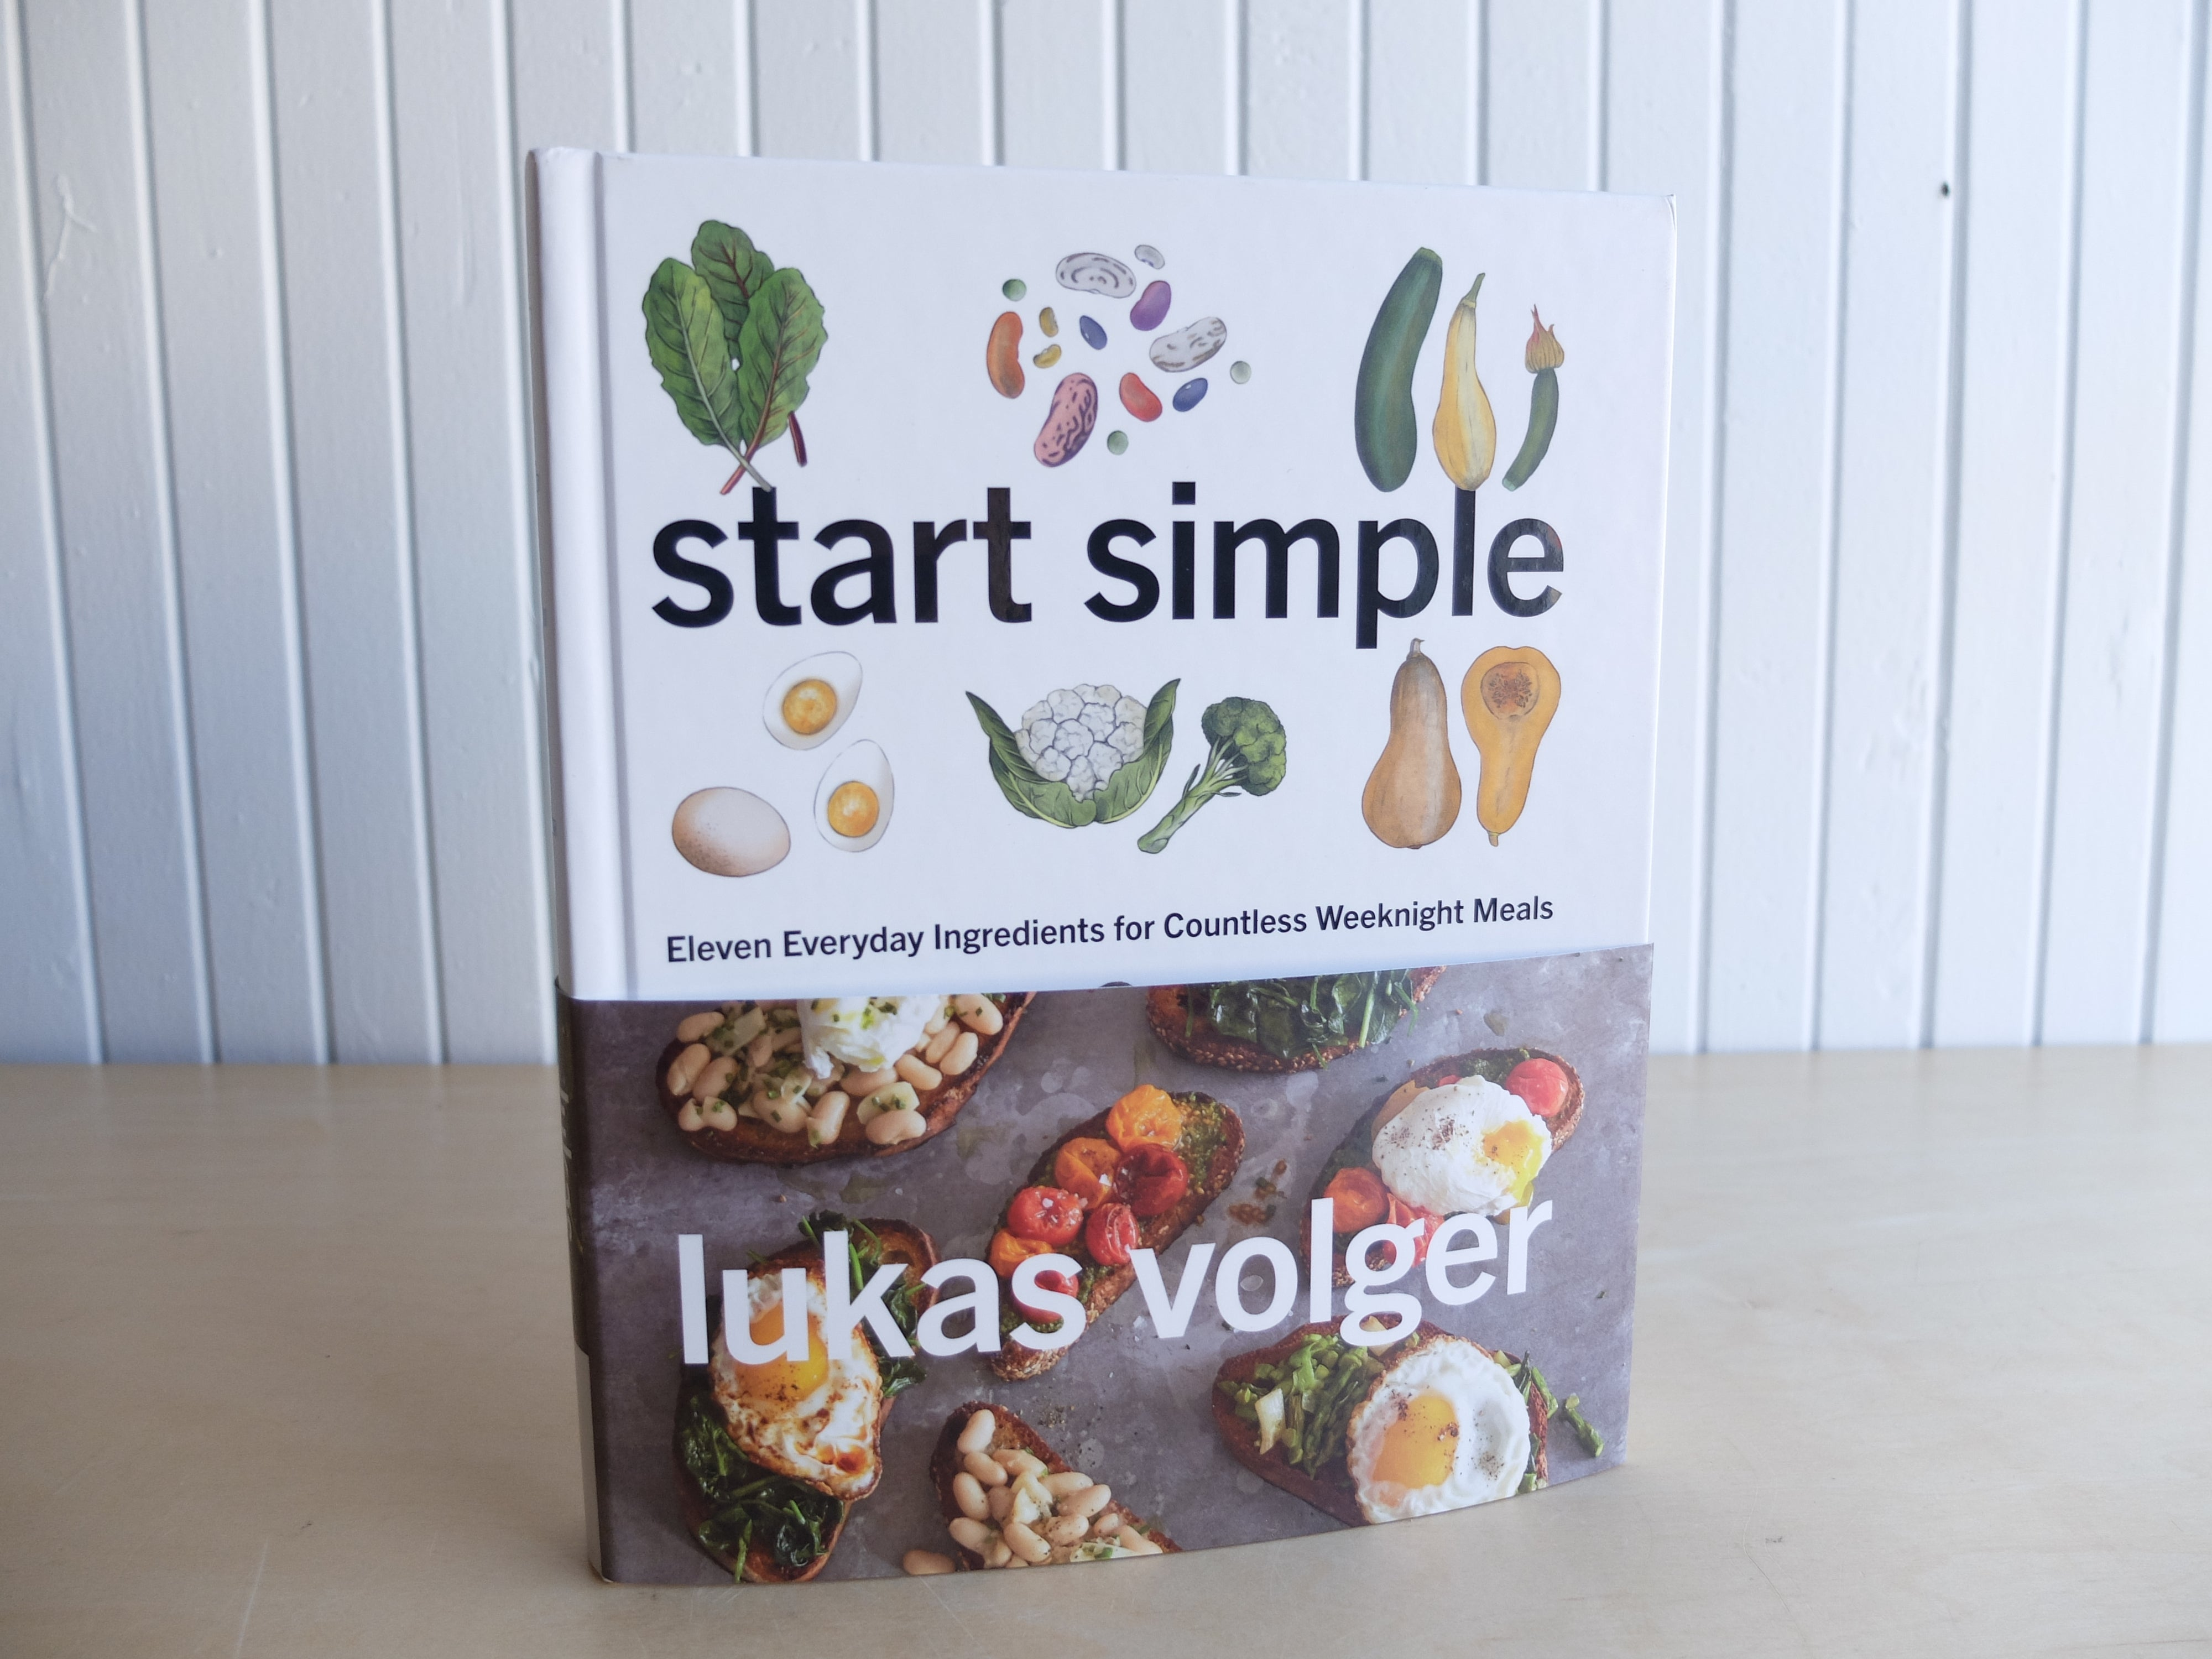 Start Simple by Lukas Volger